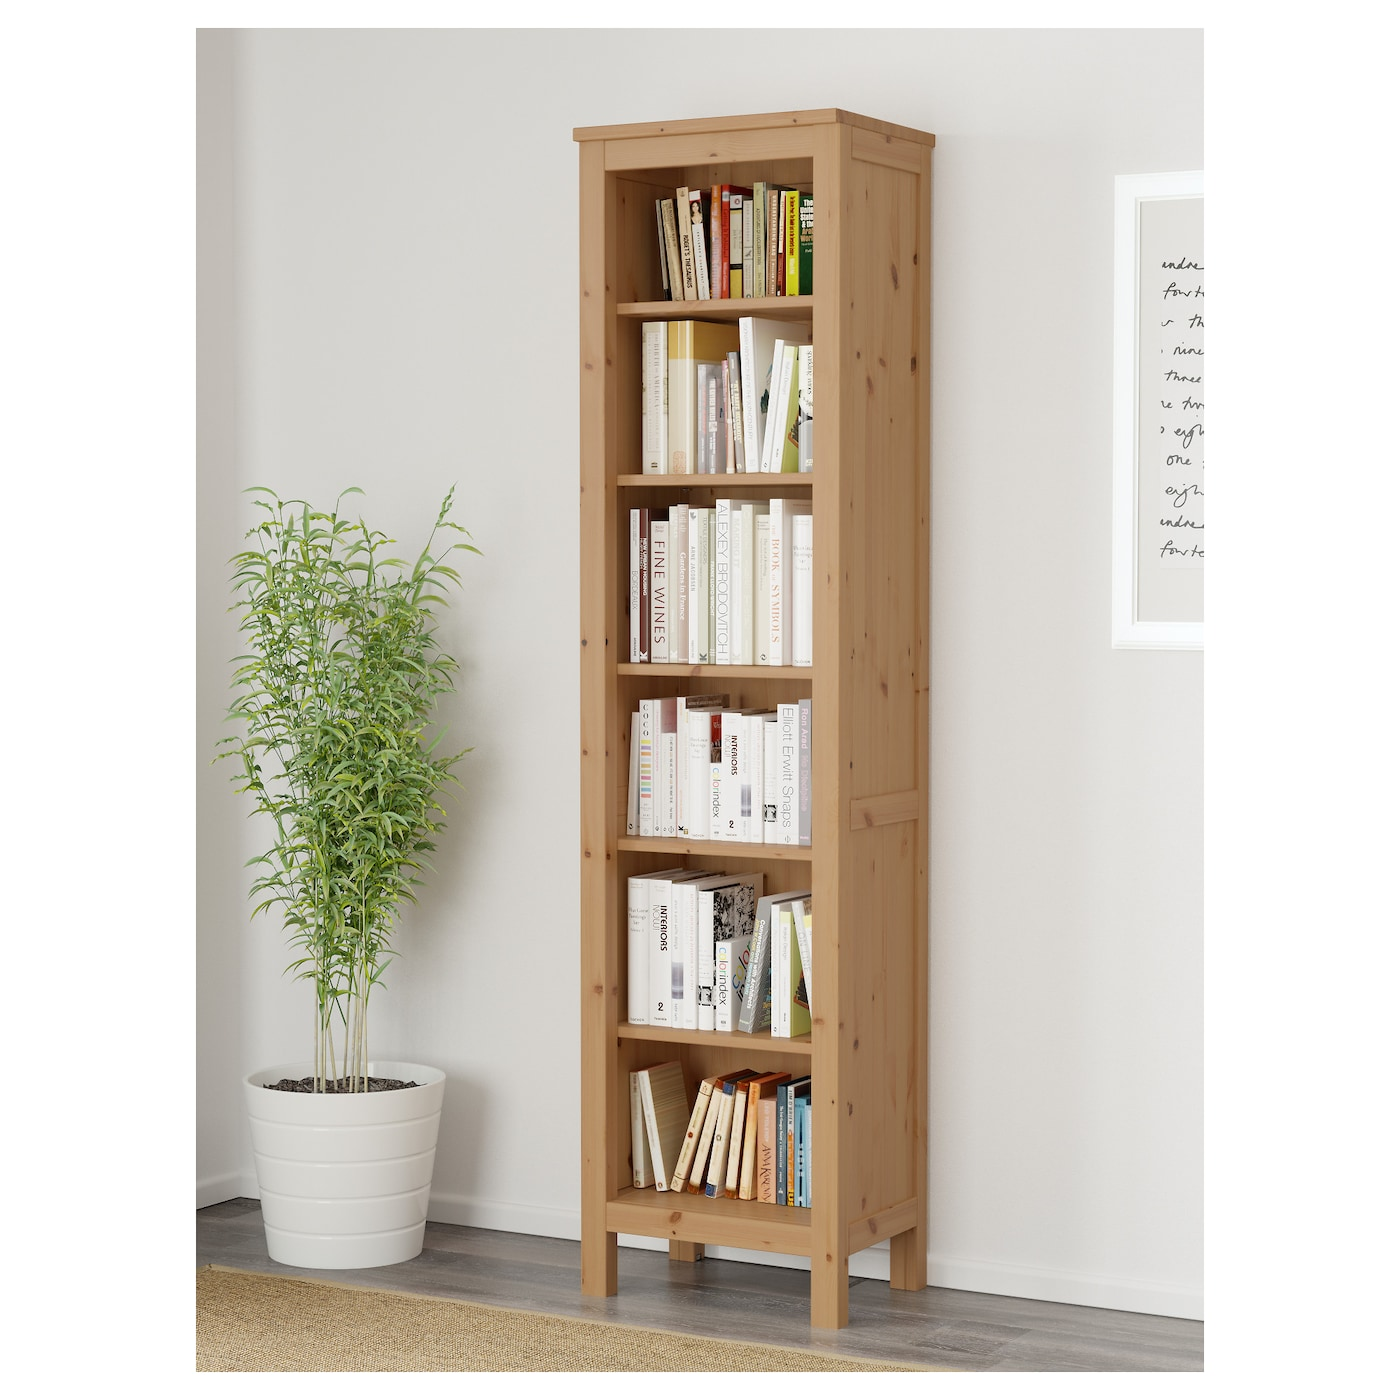 Hemnes bookcase light brown 49x197 cm ikea for Ikea wooden bookshelf